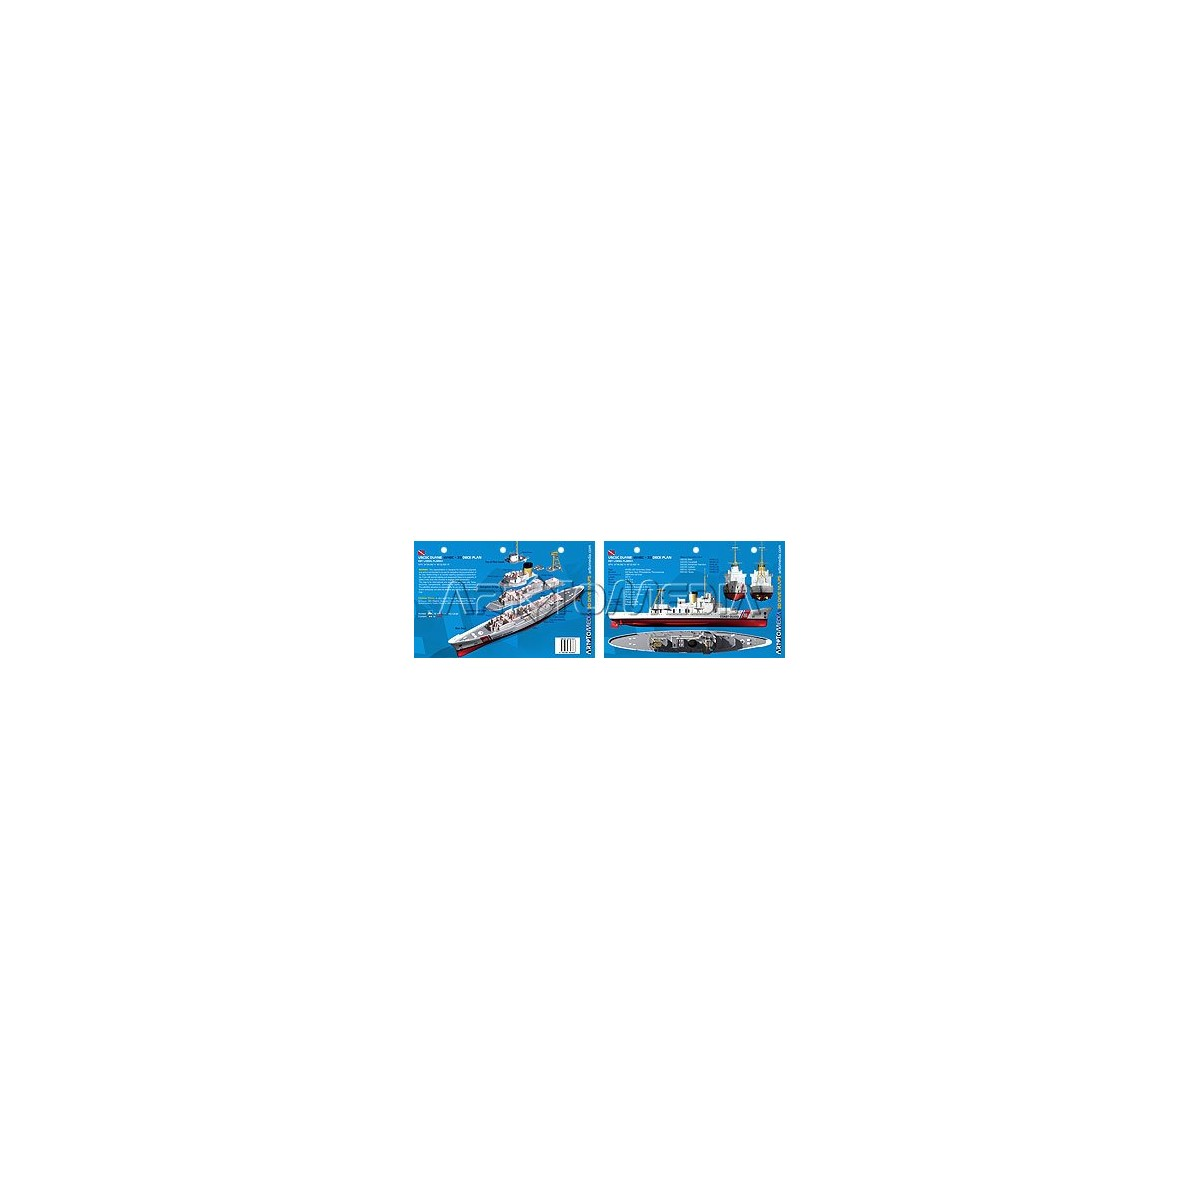 Duane Deck in Key Largo, Florida (8.5 x 5.5 Inches) (21.6 x 15cm) - New Art to Media Underwater Waterproof 3D Dive Site Map